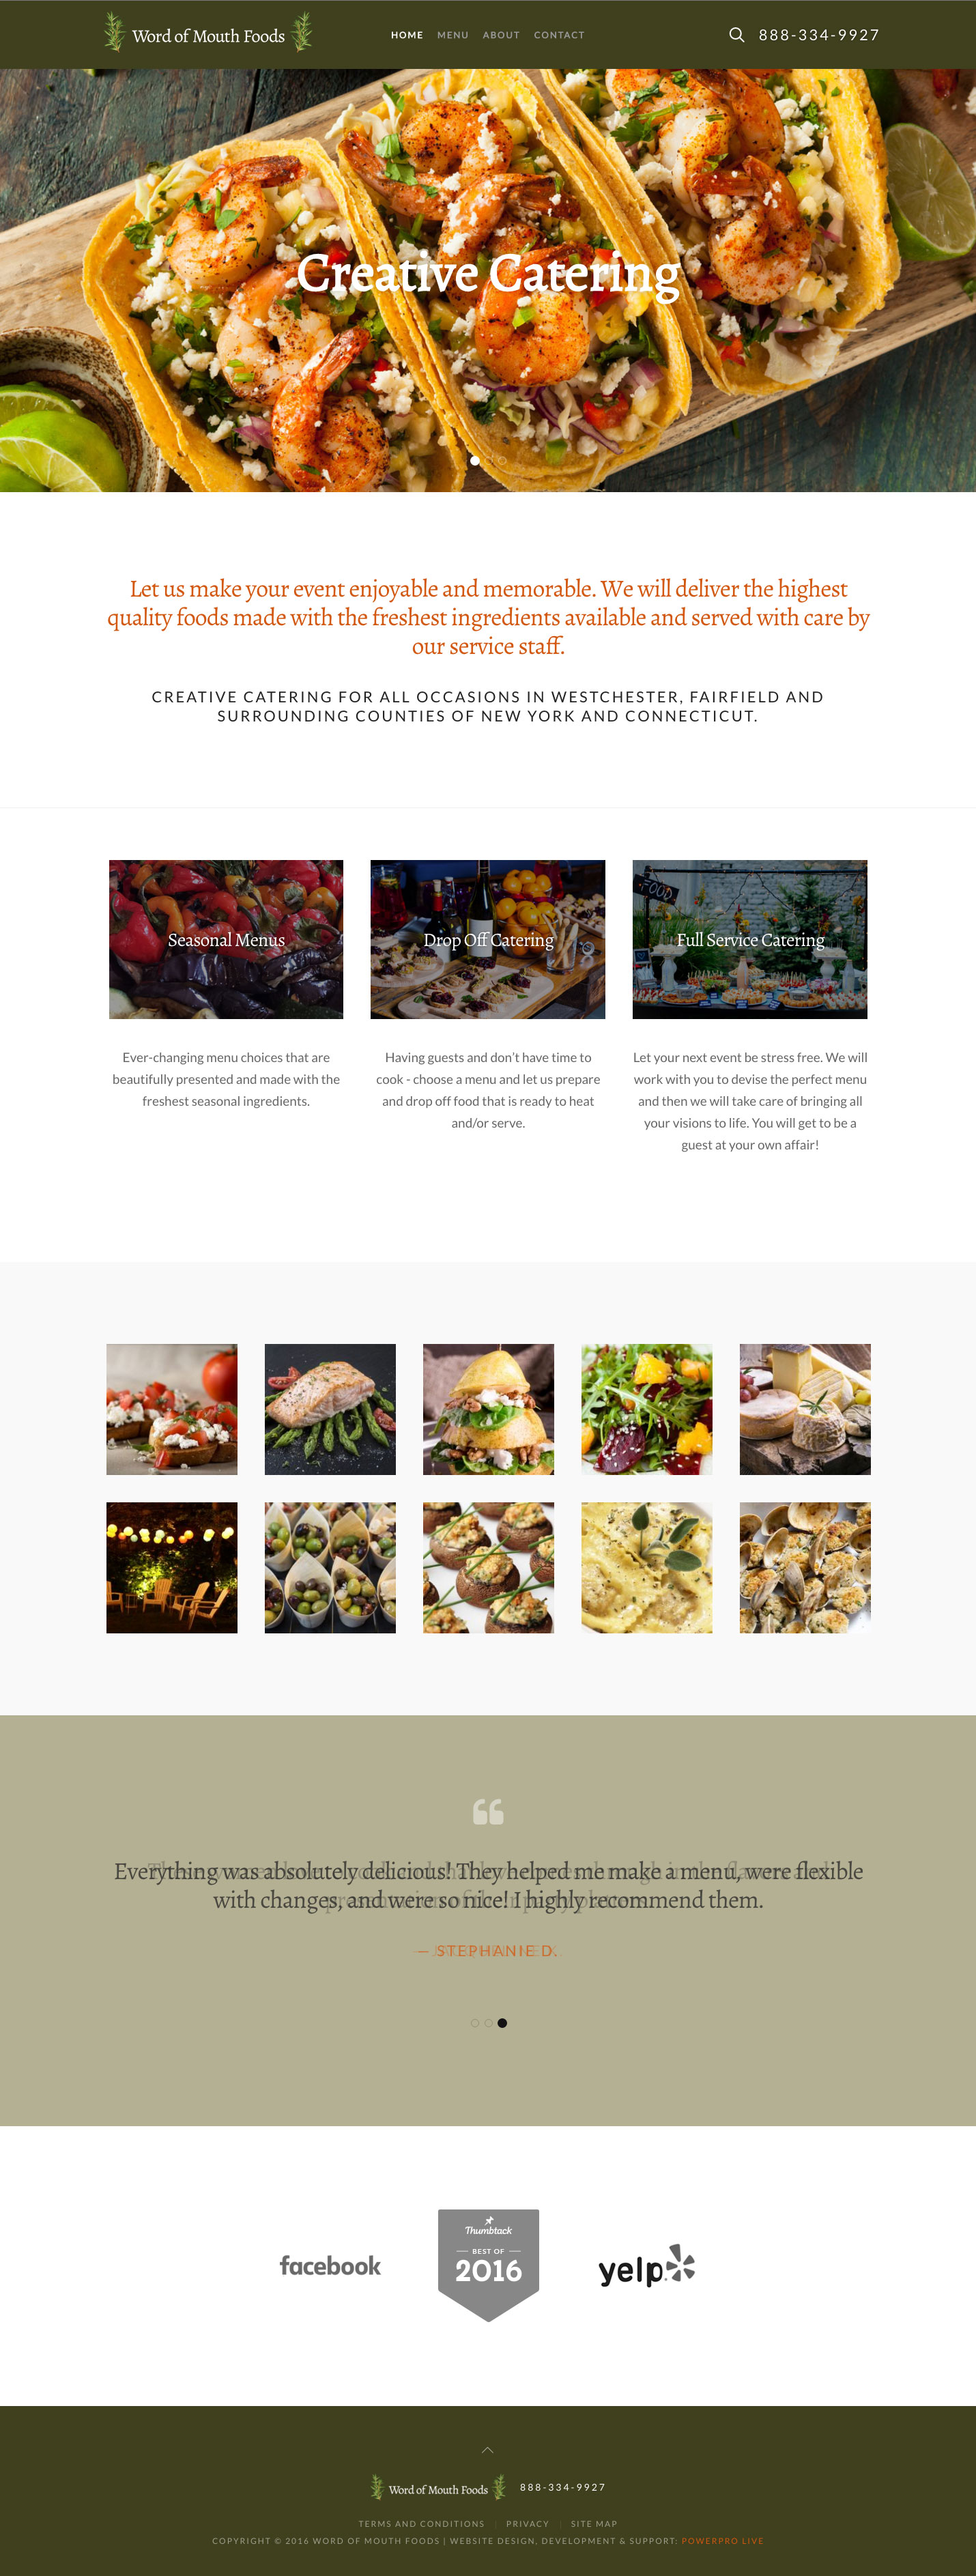 word-of-mouth-foods-website